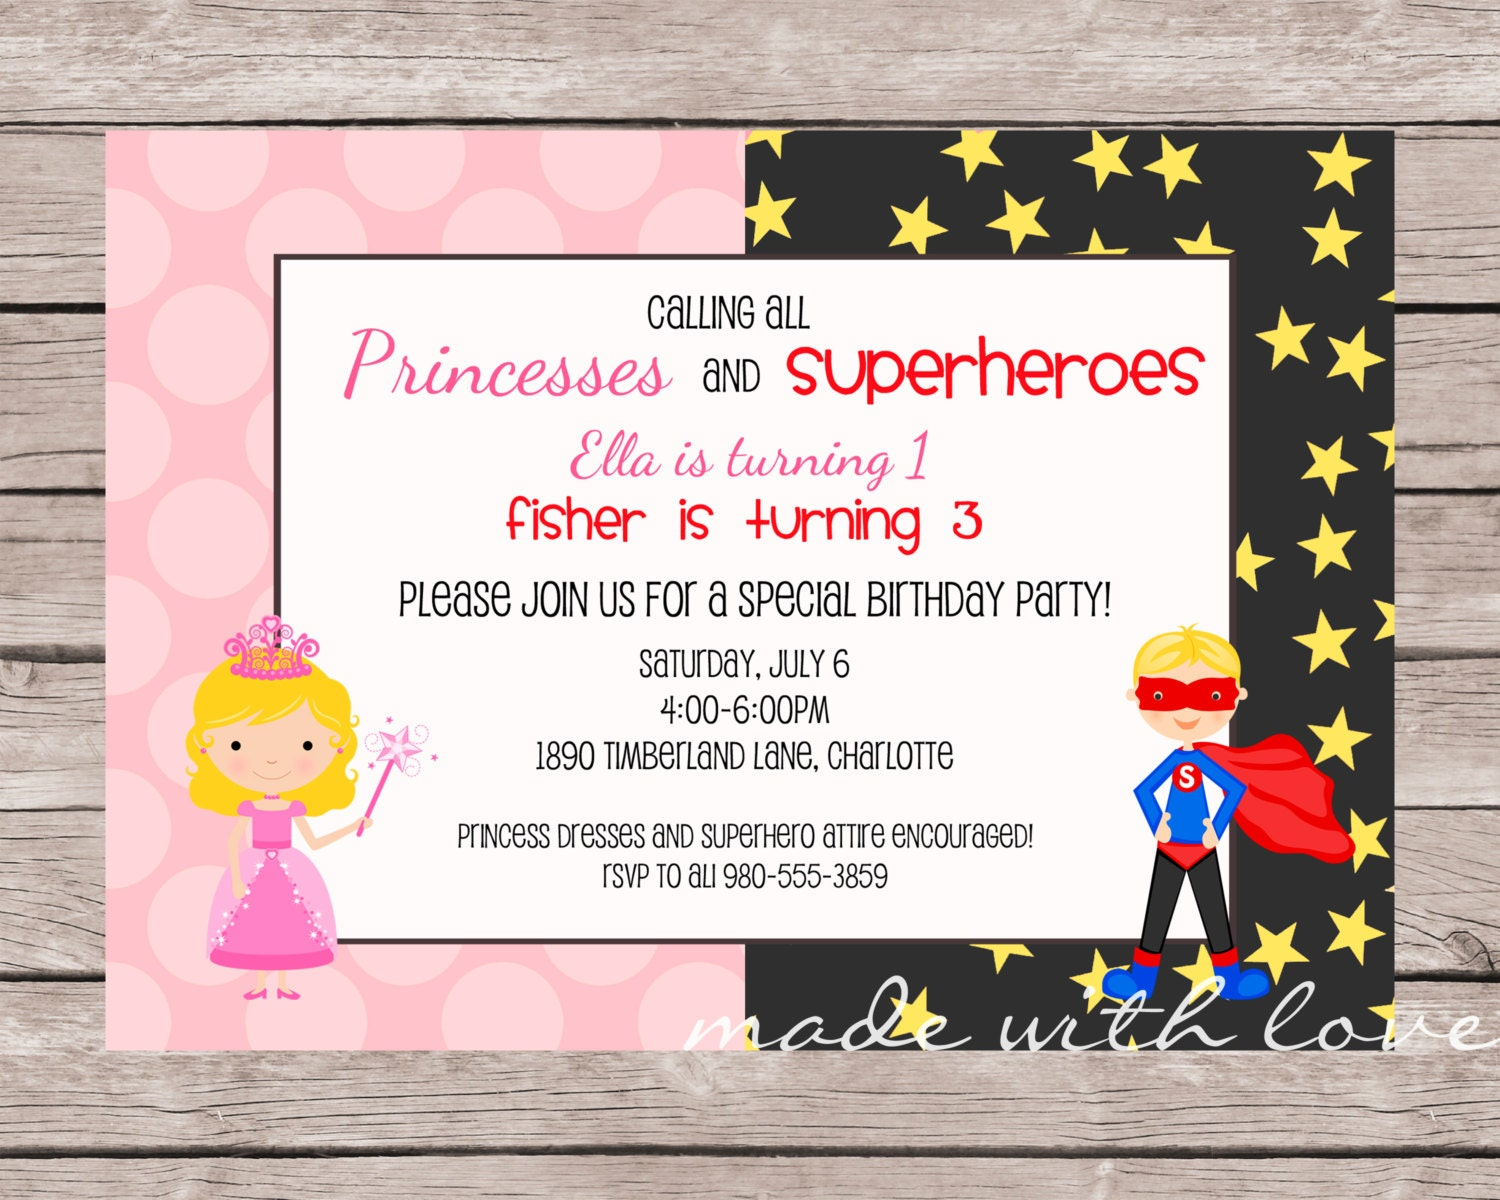 a princess and superhero birthday invitation personalized and